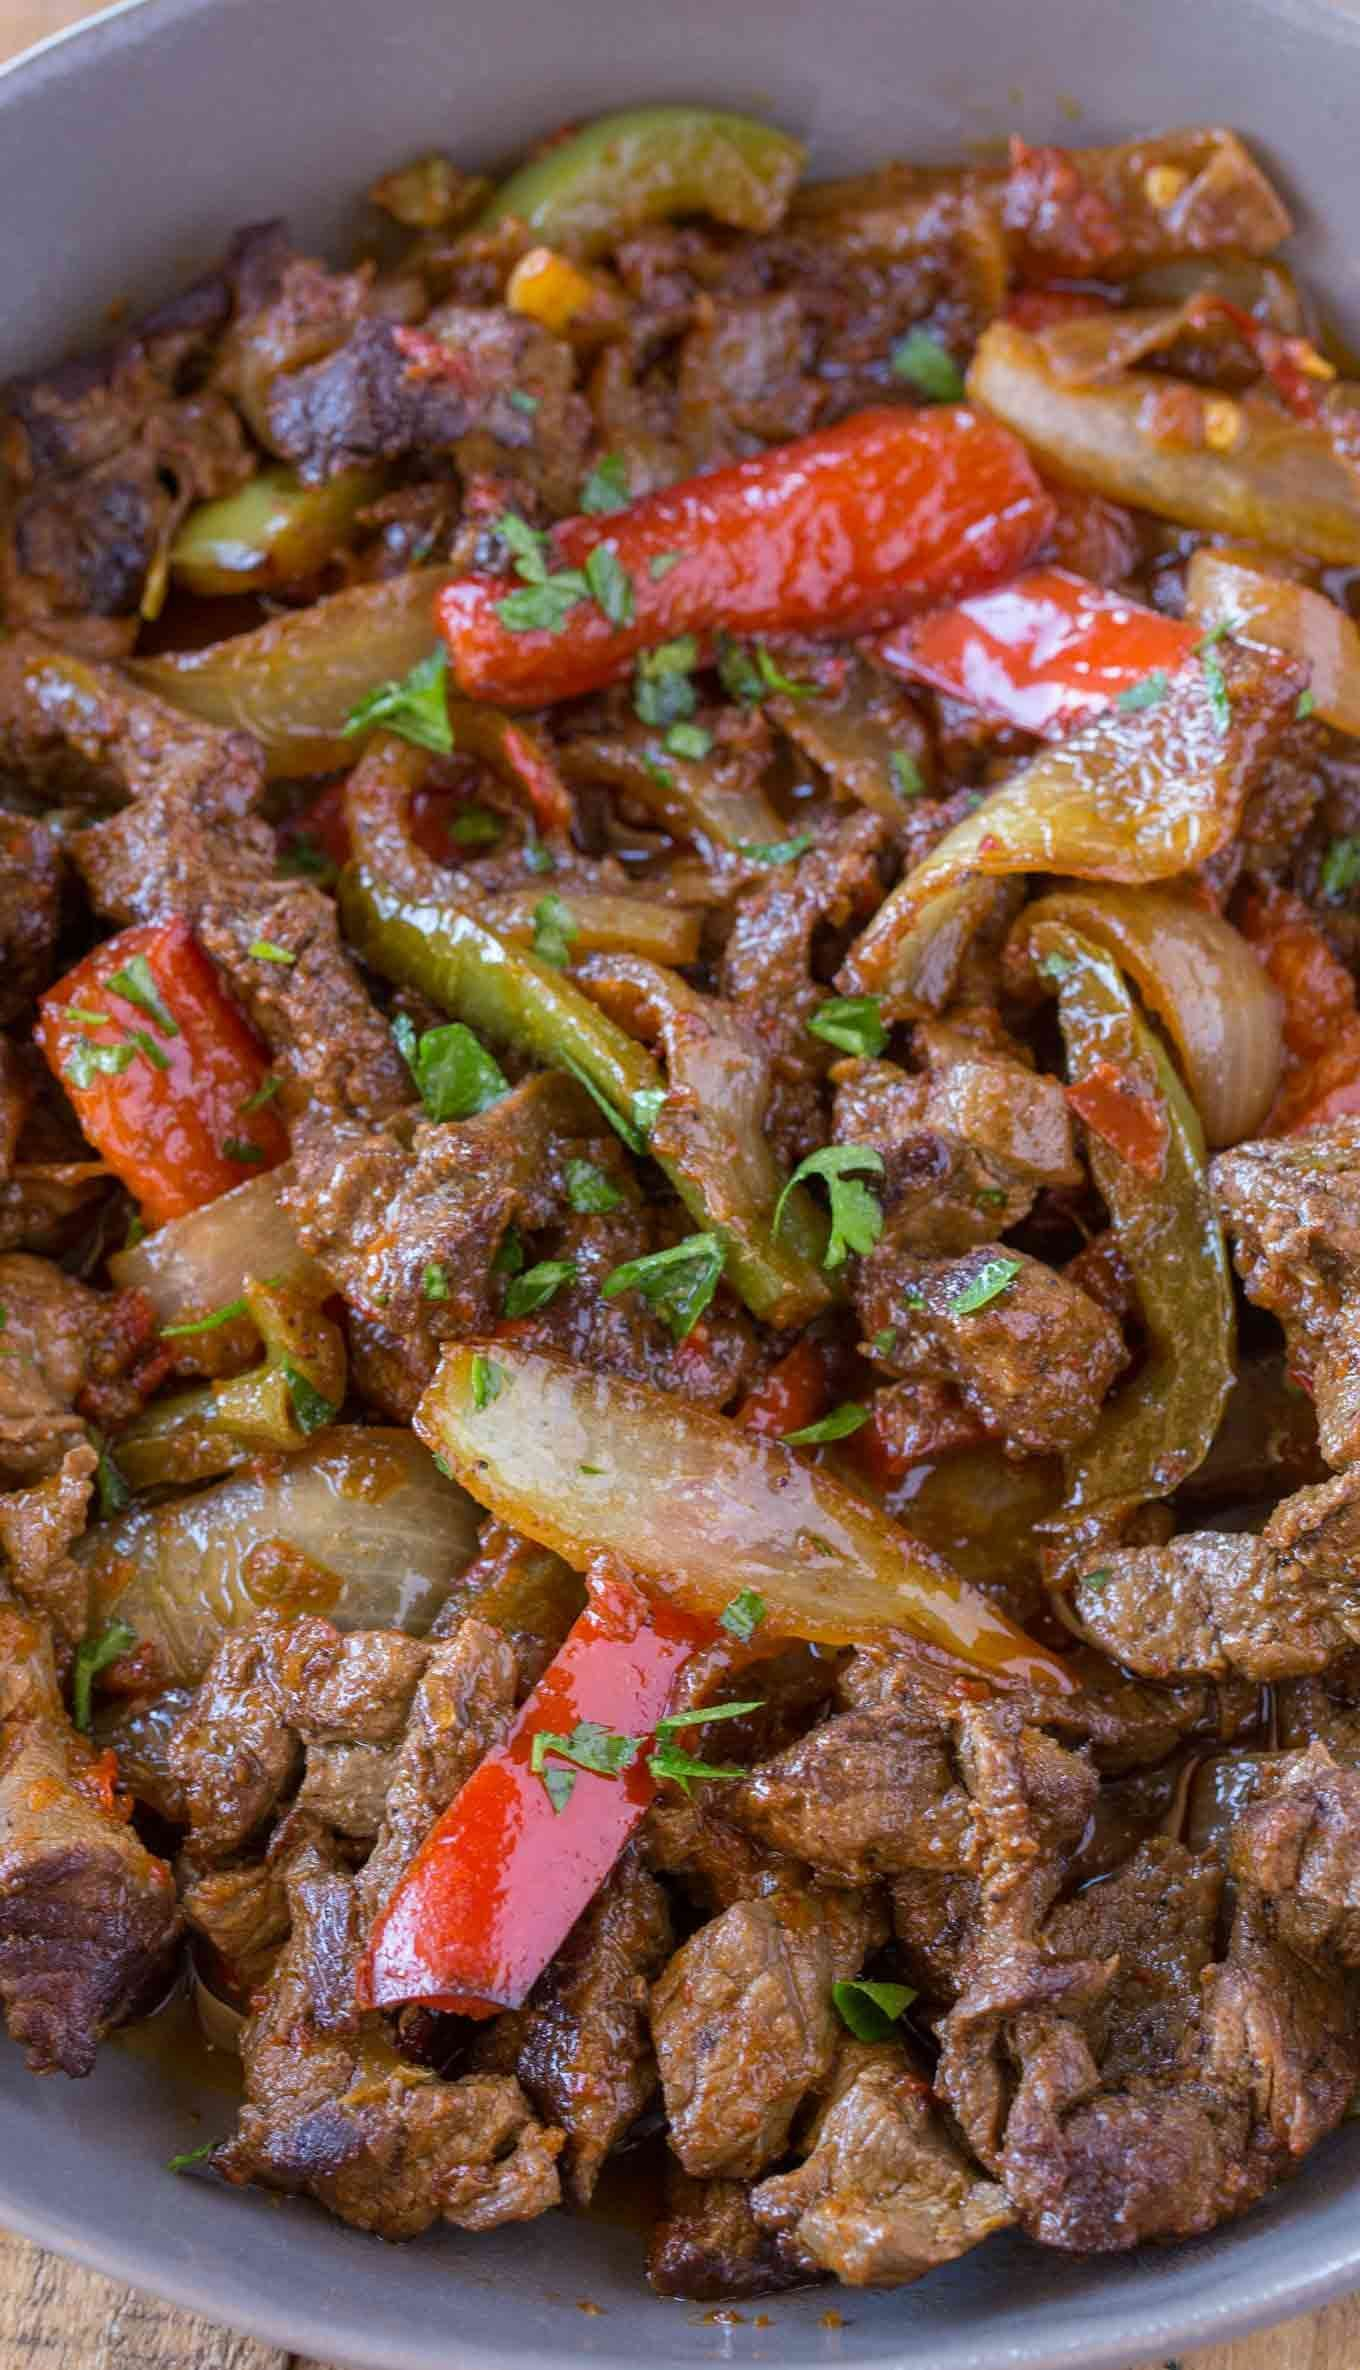 Beef Fajita Skillet made with flank steak, bell peppers, onions and a homemade fajita seasoning with just 4 smart points per serving! | #weightwatchers #ww #weightwatchersrecipes #beeffajitas #fajitas #mexicanrecipes @healthymexicanfood #cookingwithpoints #healthybeefrecipes #lowcalorie @dietrecipes #healthyfood #homemadefajitaseasoning Beef Fajita Skillet made with flank steak, bell peppers, onions and a homemade fajita seasoning with just 4 smart points per serving! | #weightwatchers #ww #weig #homemadefajitaseasoning